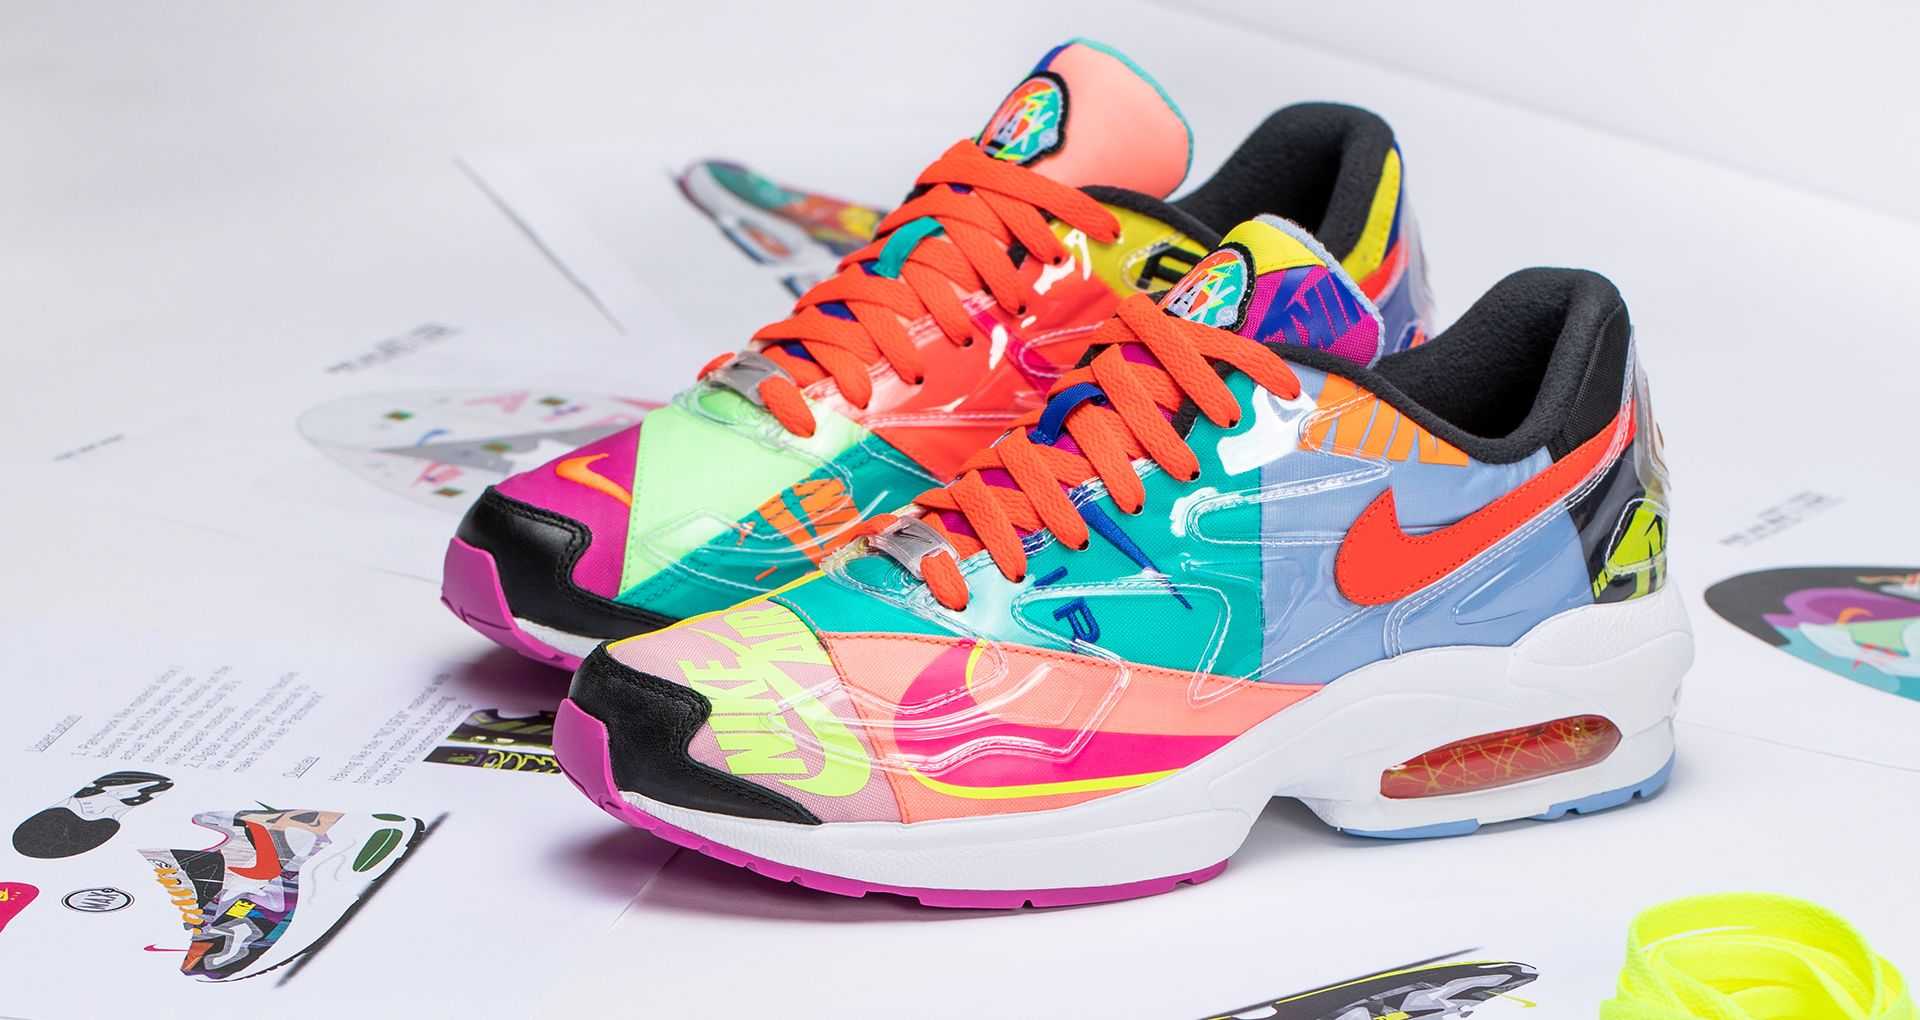 atmos Nike Air Max 2 Light Shoes Clothing |